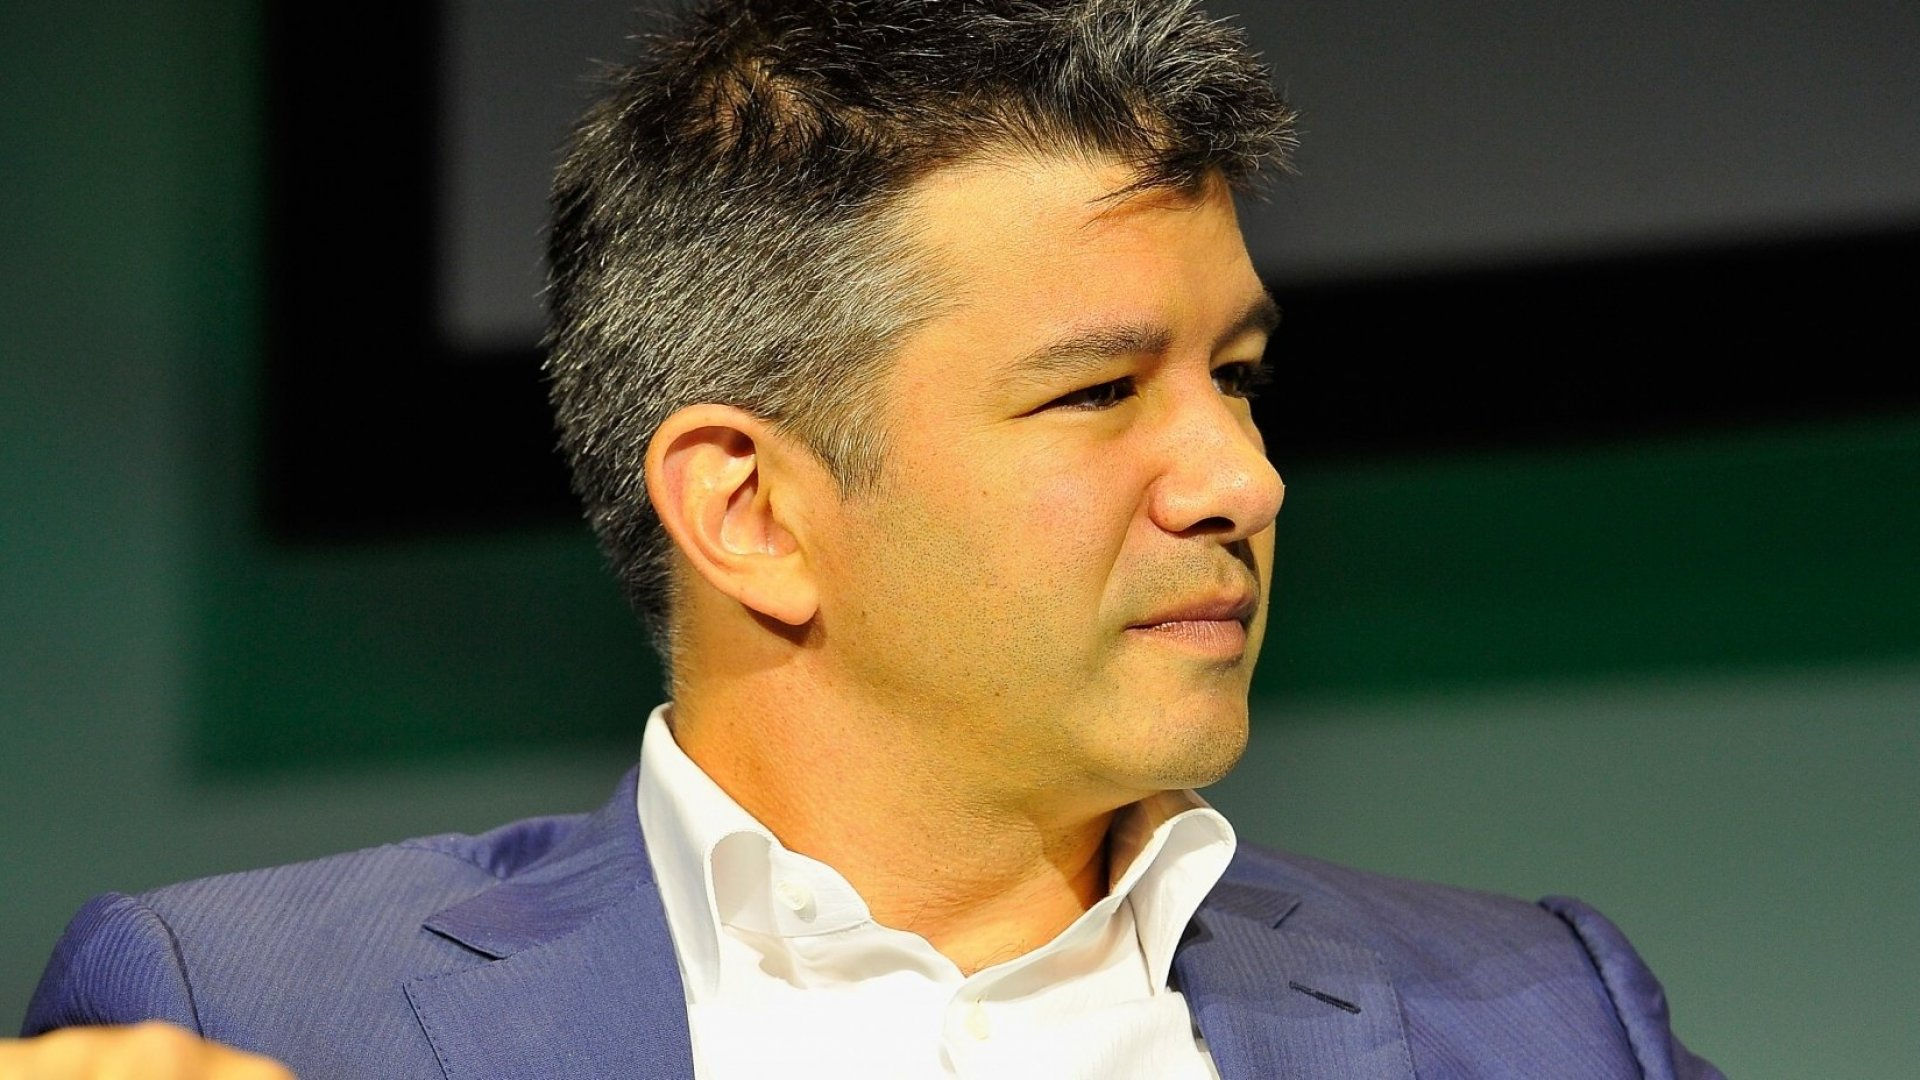 Uber Reportedly Was on Pace to Top $1.5 Billion in Revenue Last Year